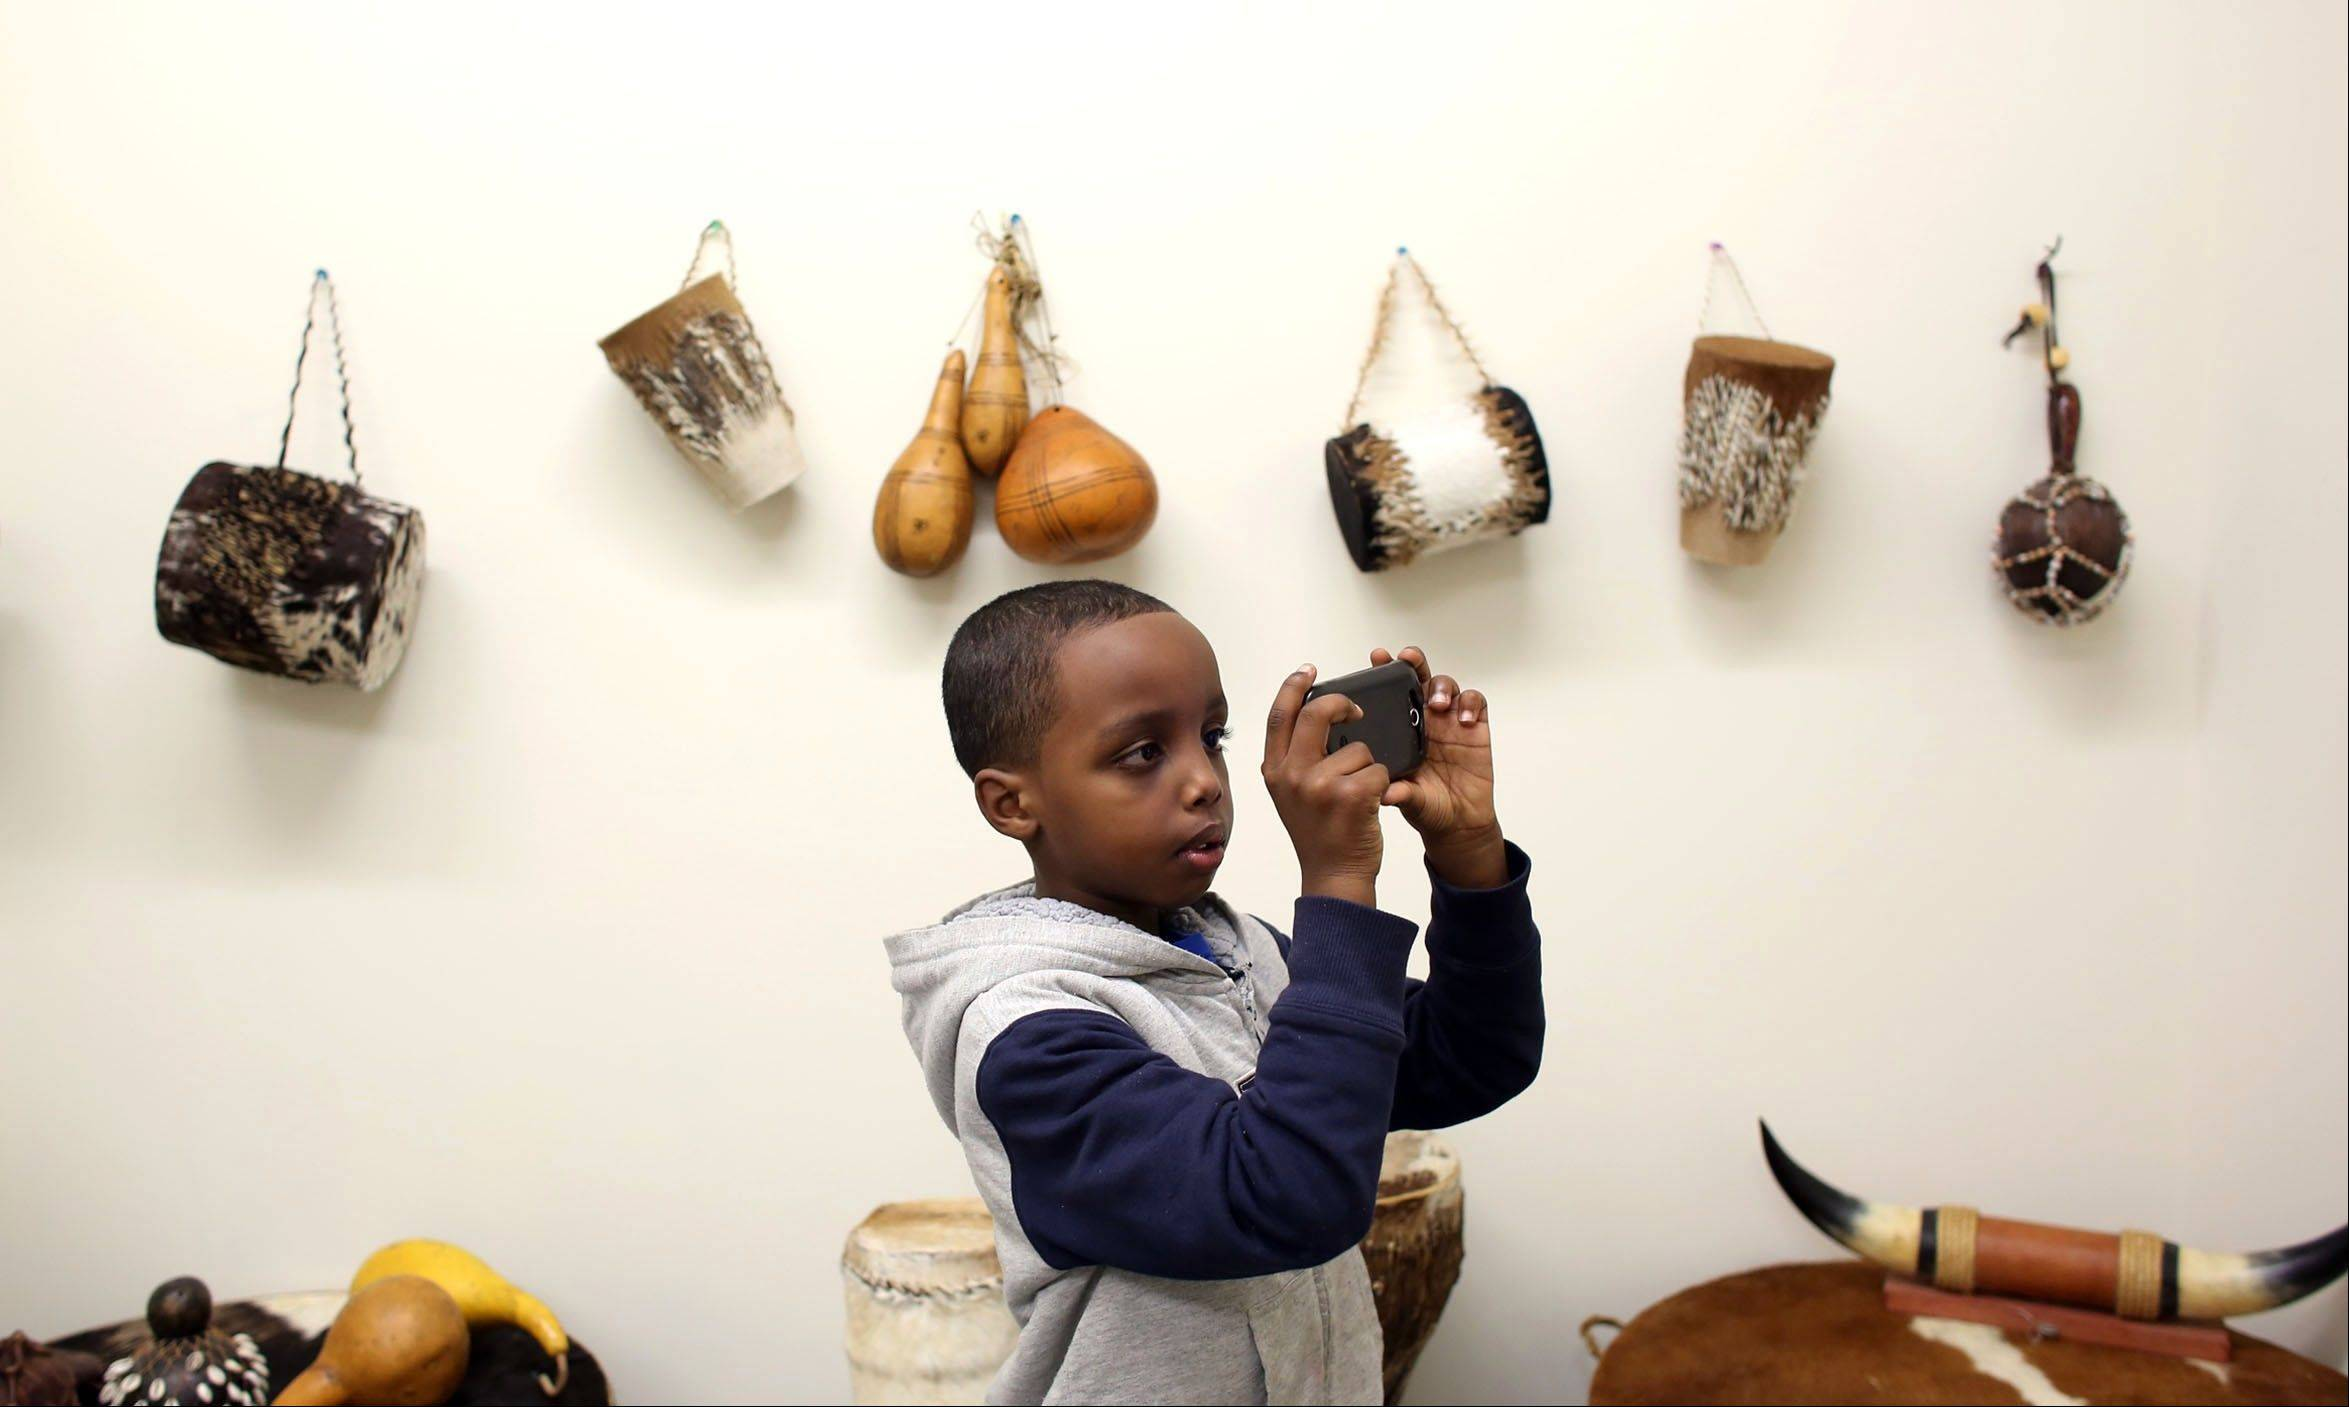 Suber Aden, 6, of St. Paul, takes pictures of traditional Somali instruments during the grand opening of the Somali Artifact and Cultural Museum in Minneapolis Saturday.